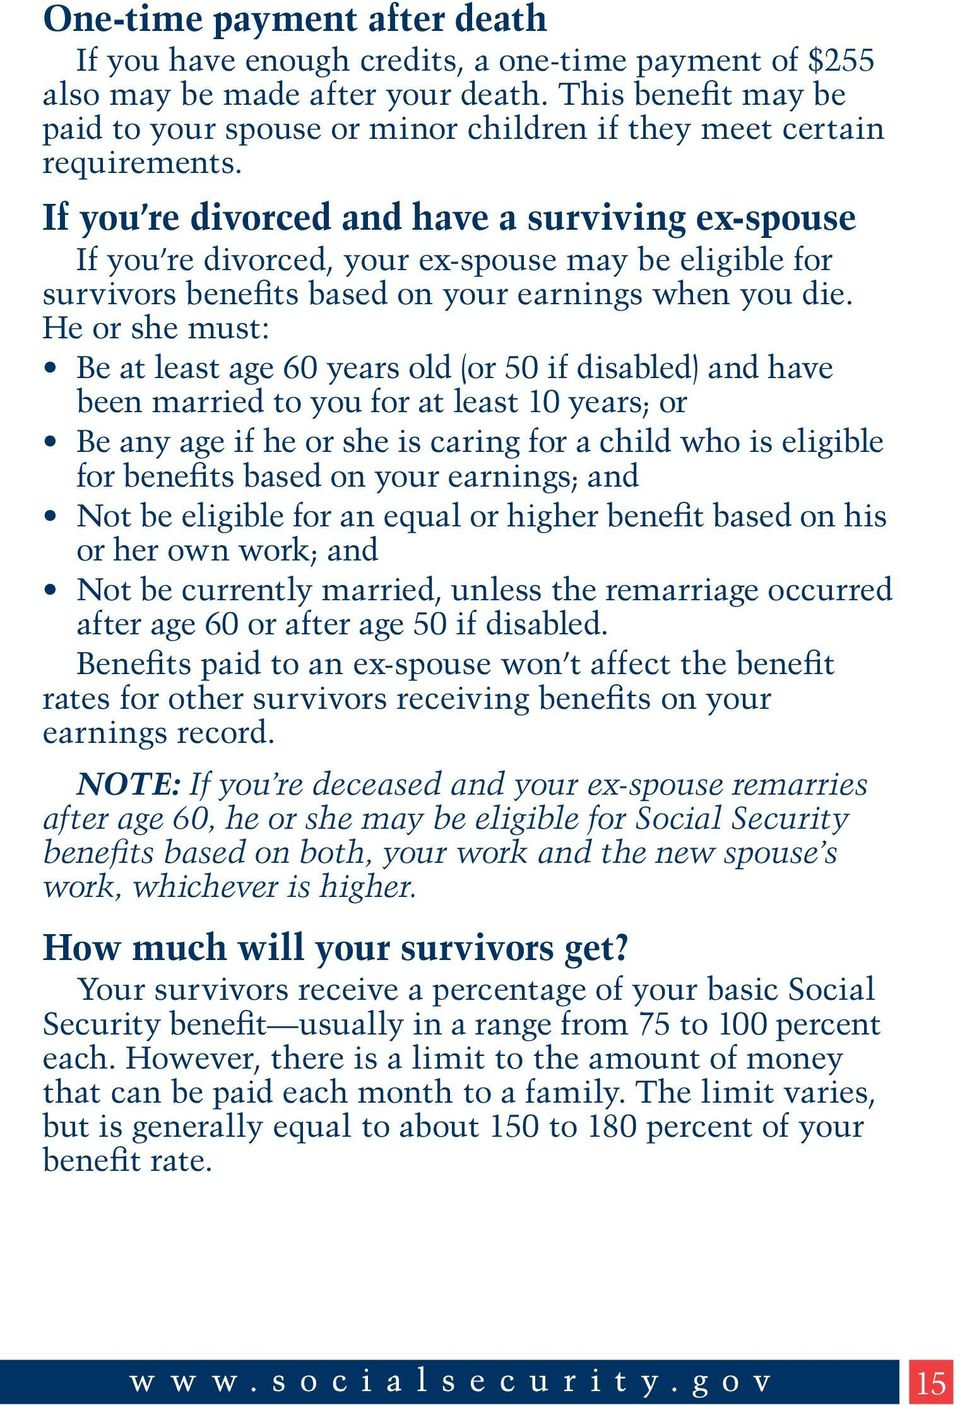 If you re divorced and have a surviving ex-spouse If you re divorced, your ex-spouse may be eligible for survivors benefits based on your earnings when you die.